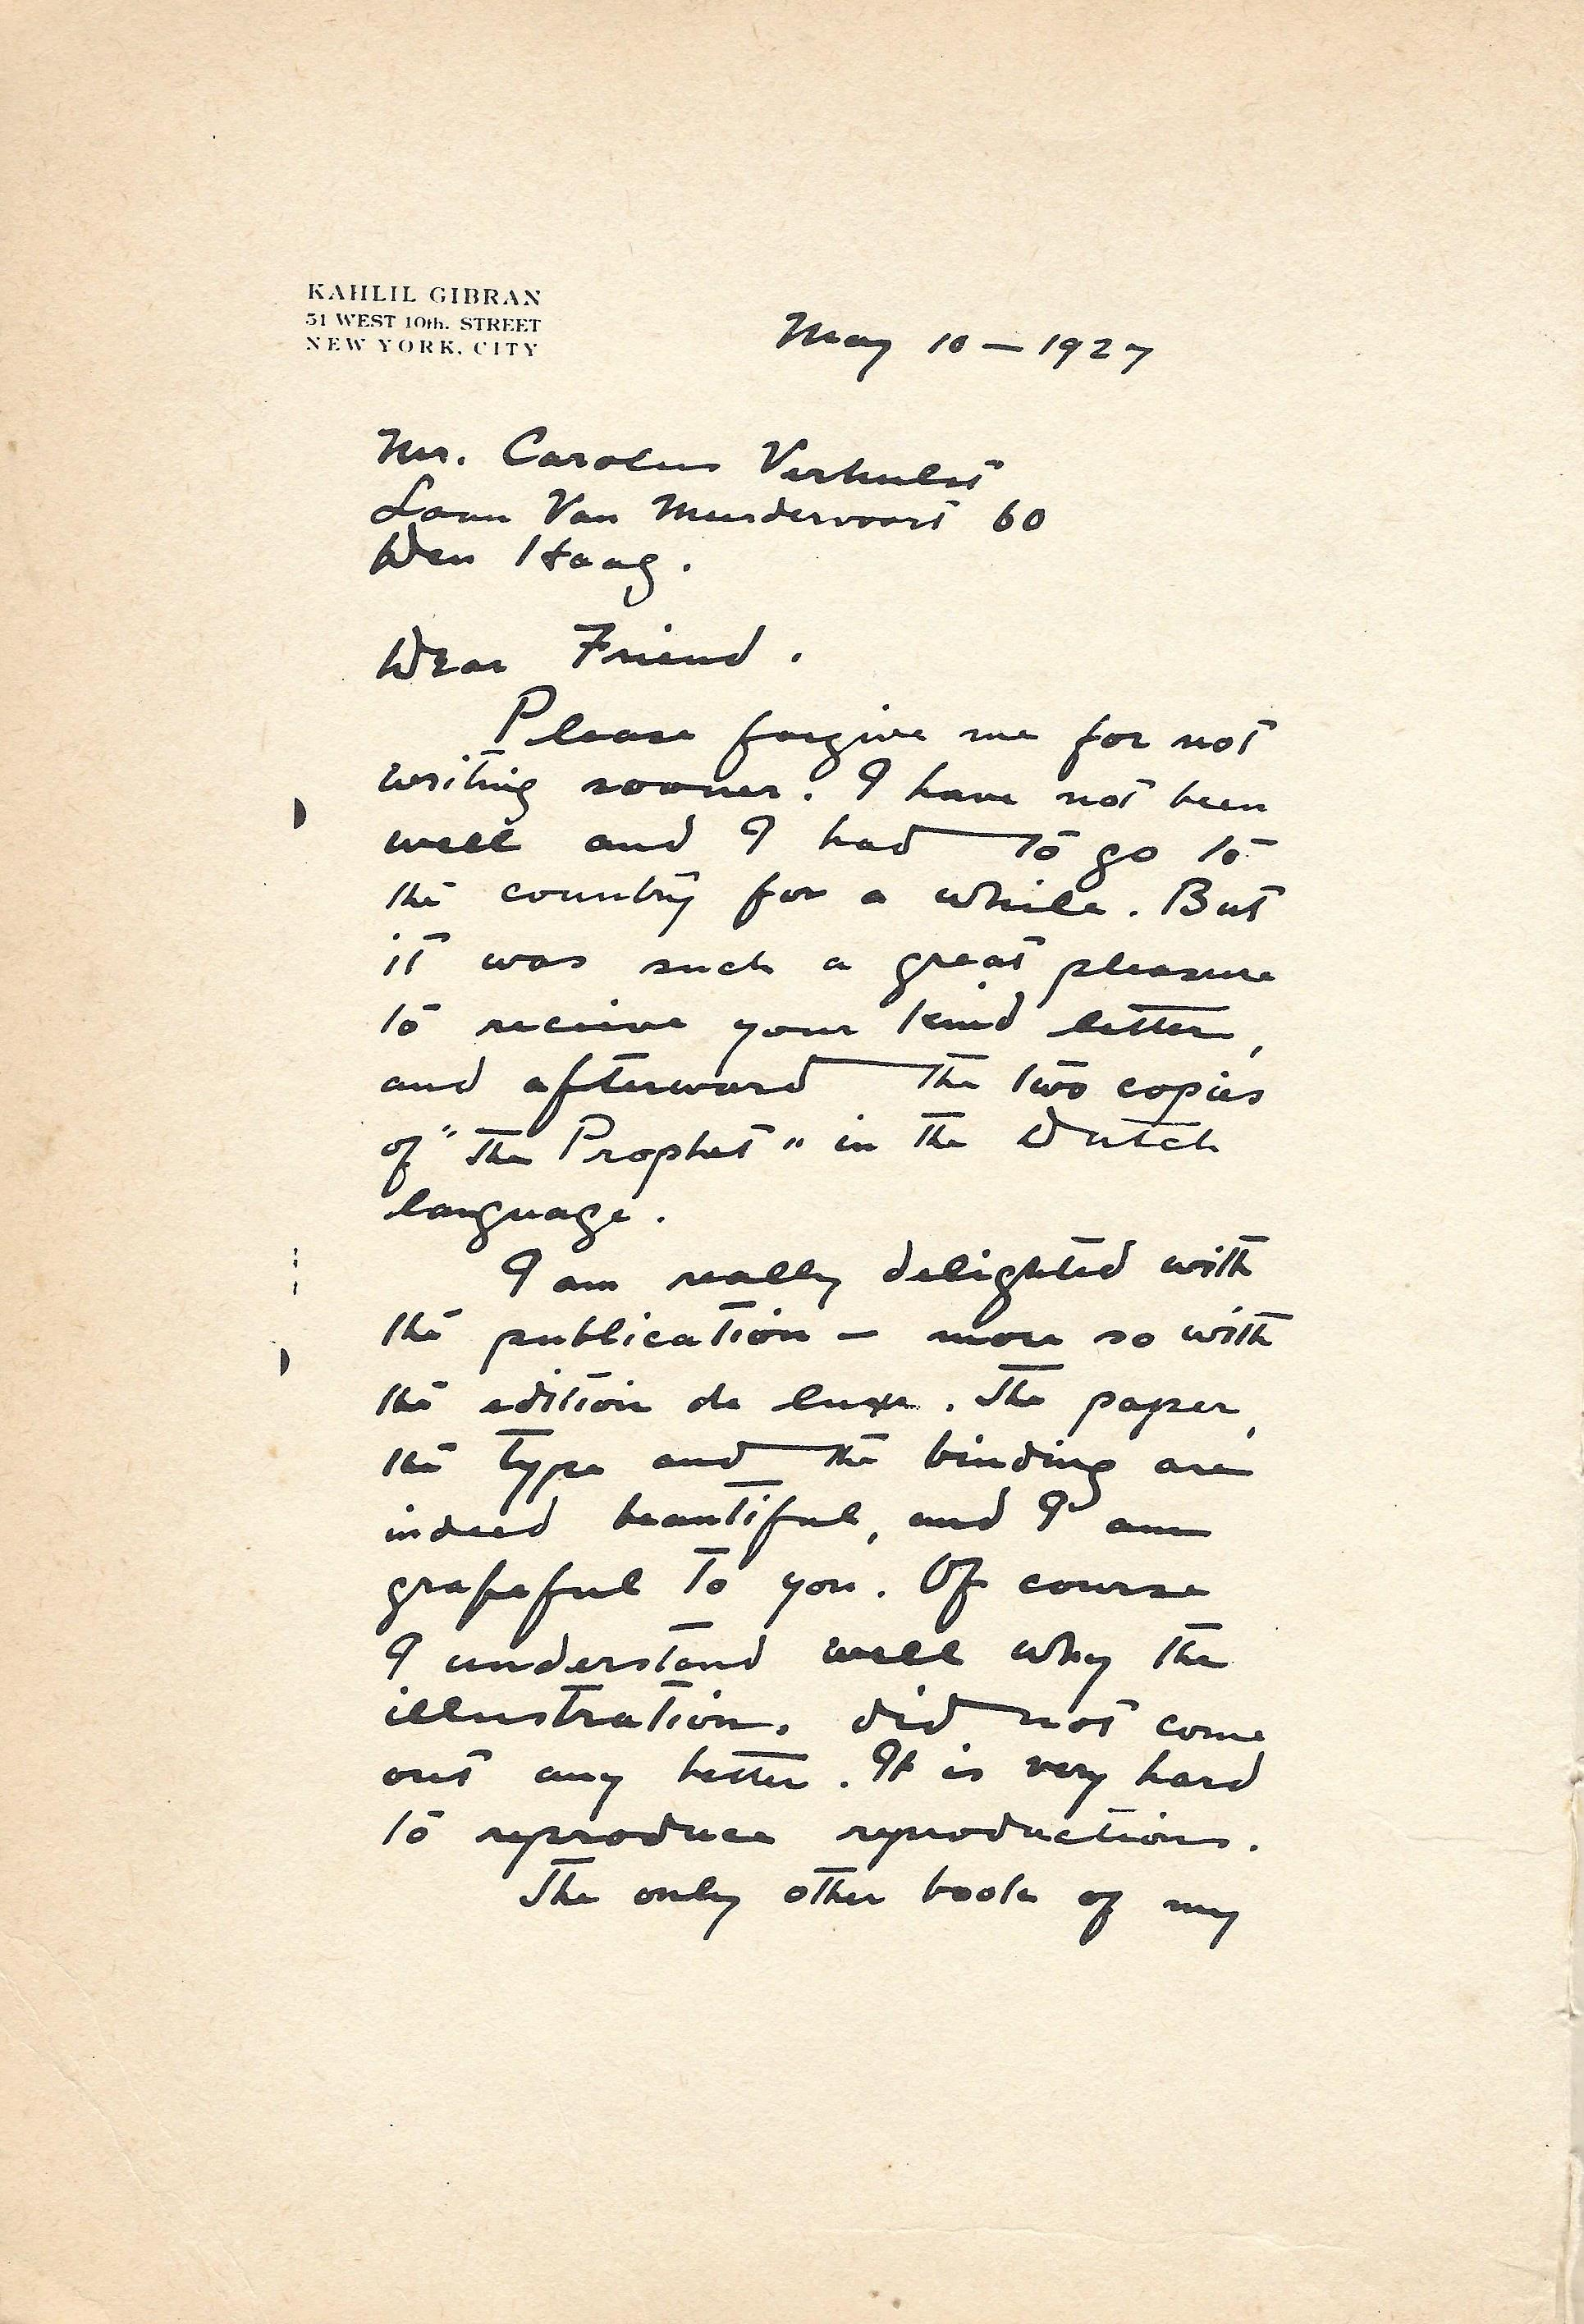 Letter of Kahlil Gibran to Carolus Verhulst, 10 May 1927